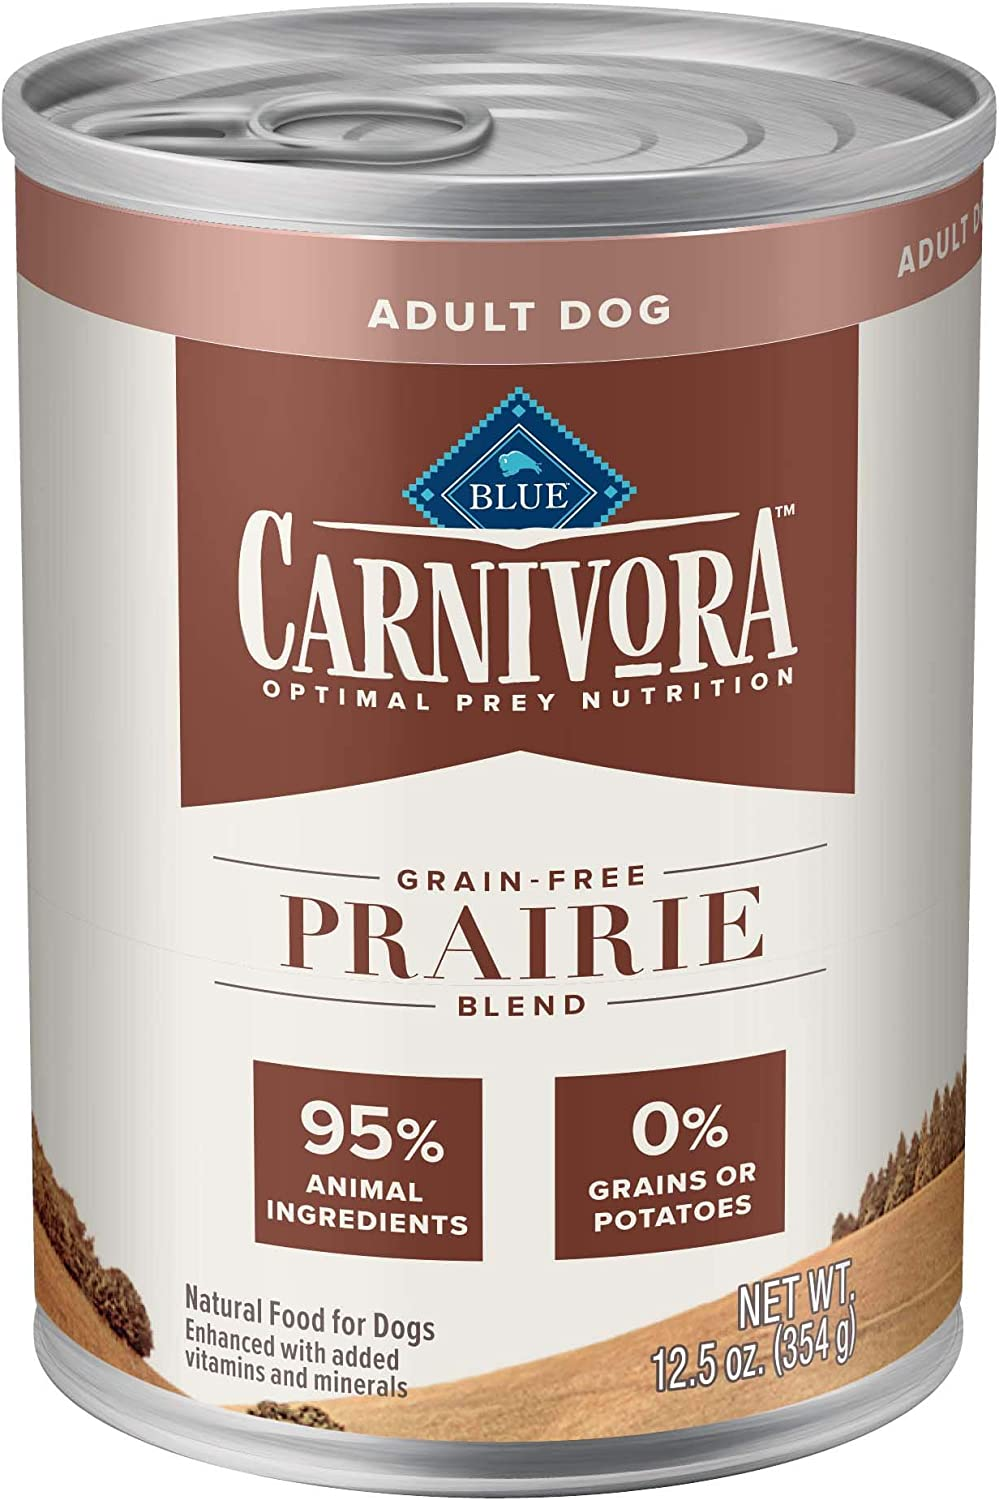 Blue Buffalo Carnivora Optimal Prey Nutrition High Protein, Grain Free Natural Adult Wet Dog Food Cans, Prairie Blend 12.5oz (Pack of 12)